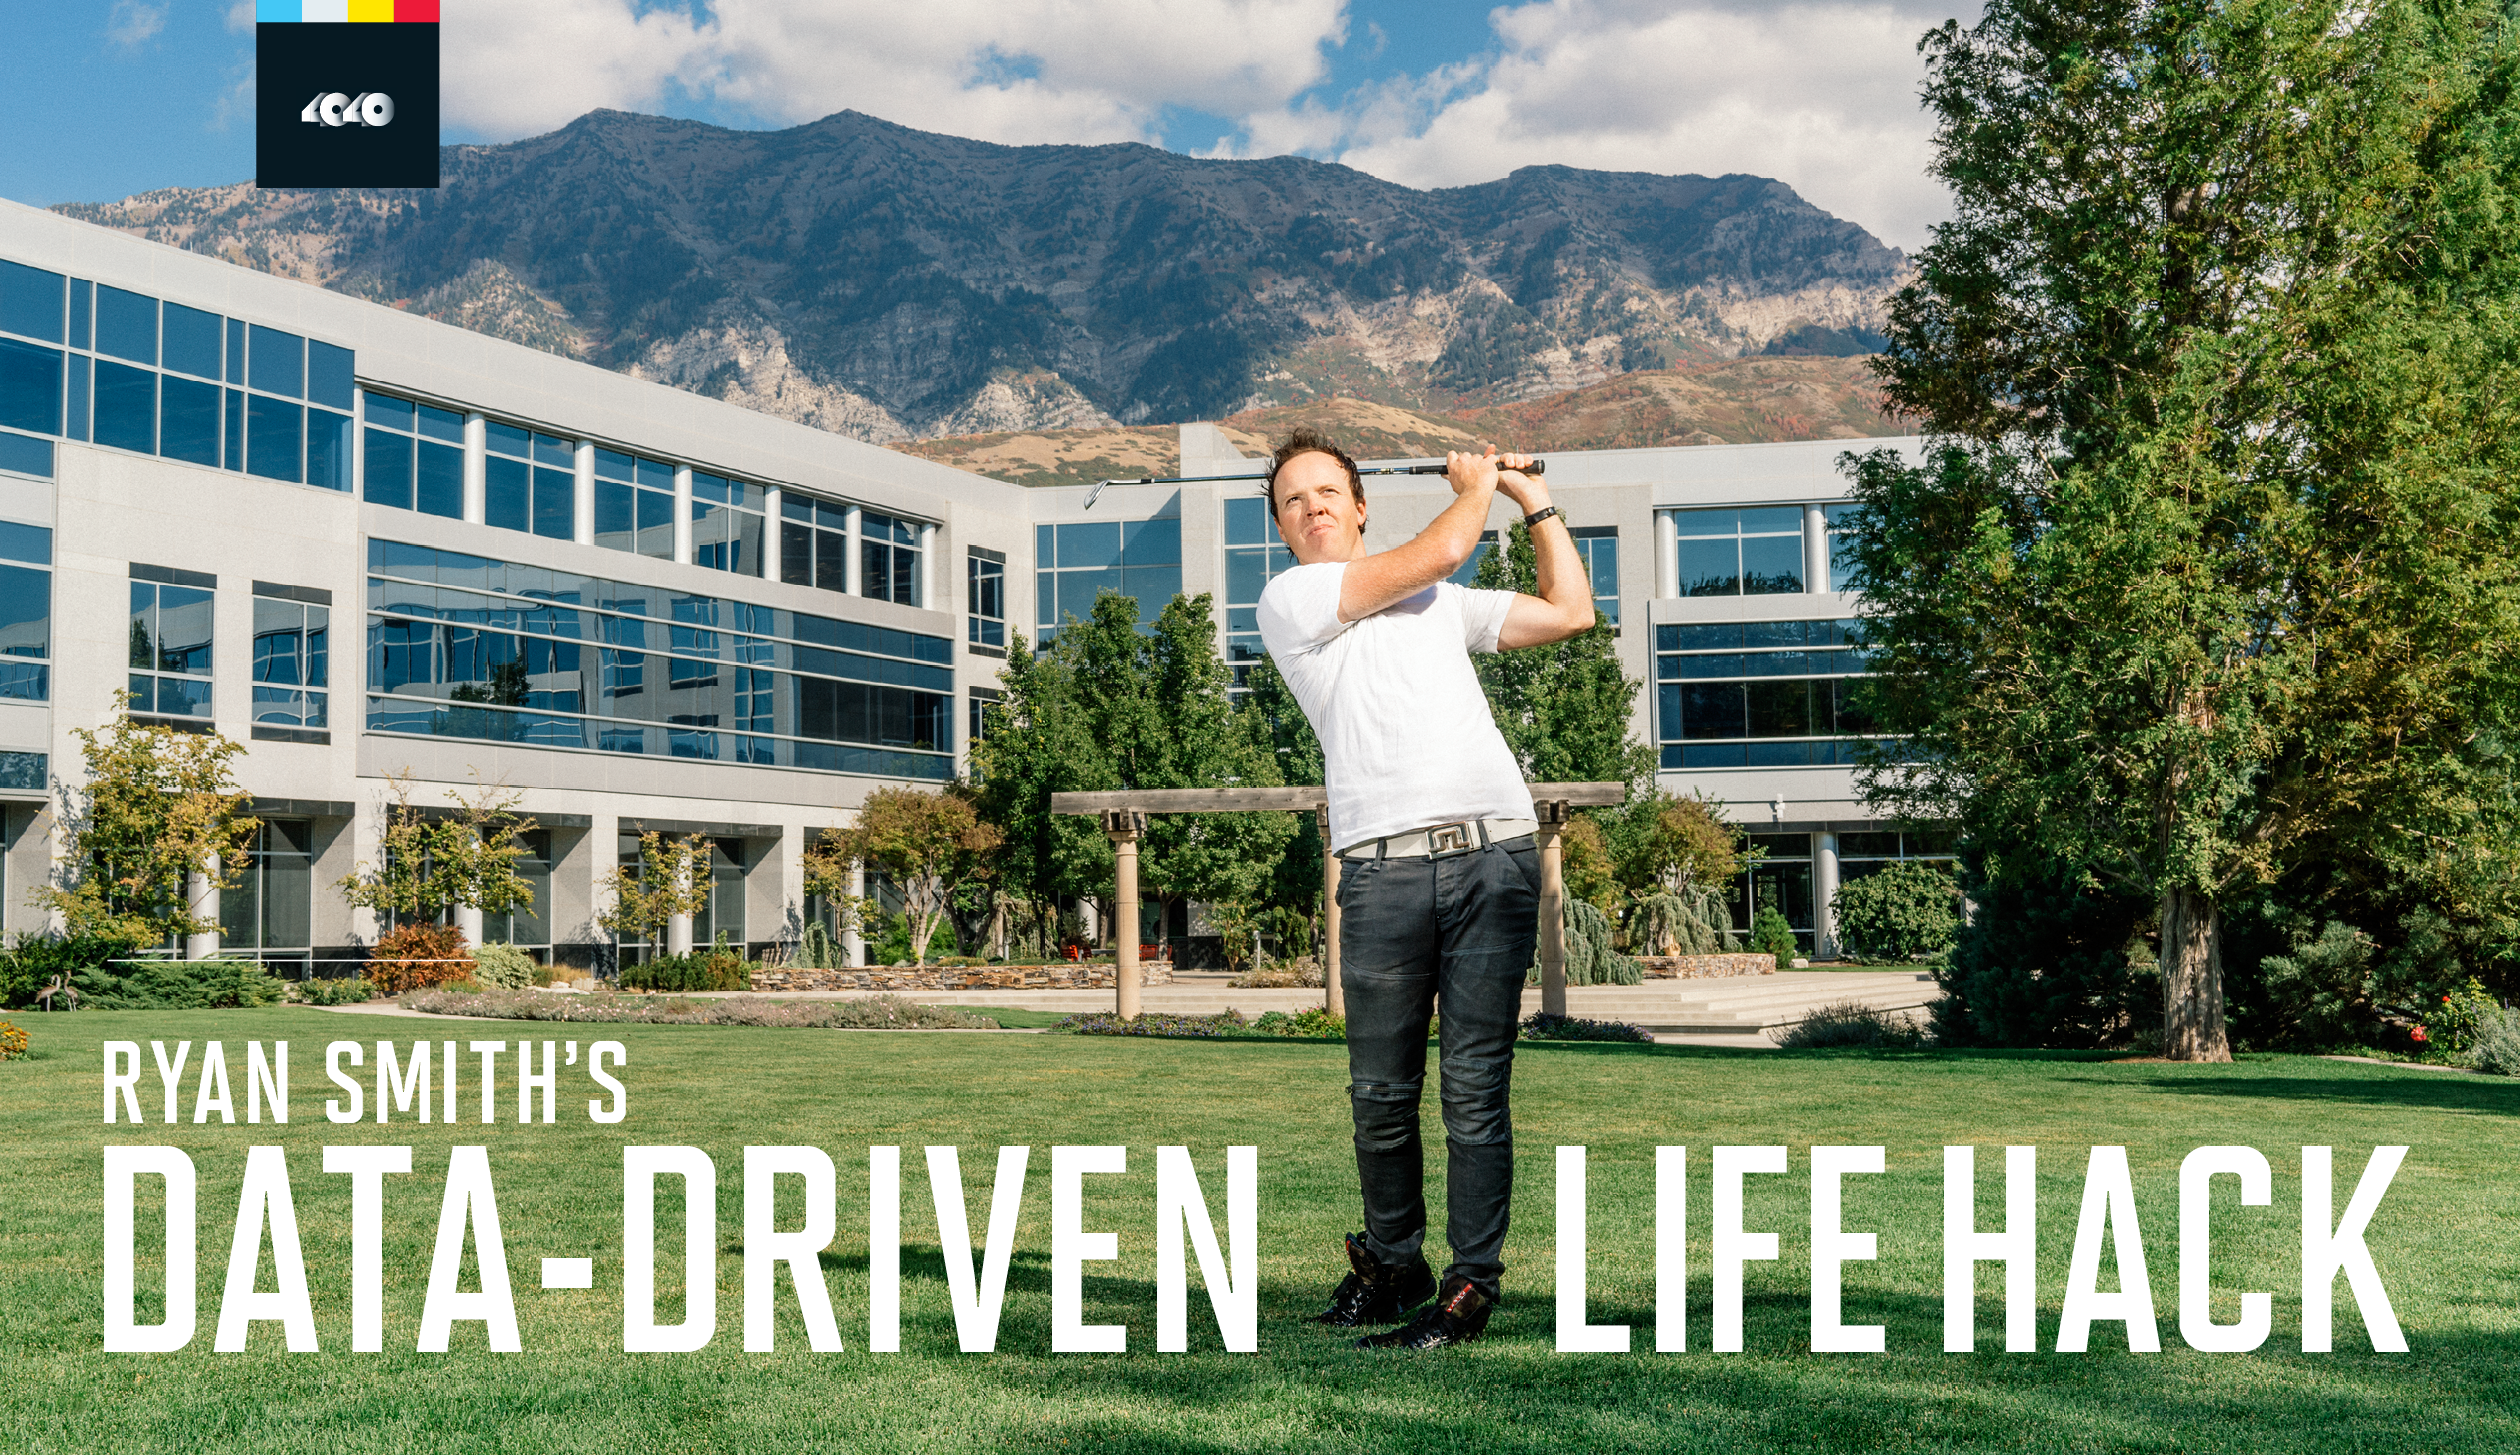 HOME-COURSE ADVANTAGE: Ryan Smith, a two-handicap golfer, takes a practice swing outside Qualtrics's new headquarters, in Provo, Utah.